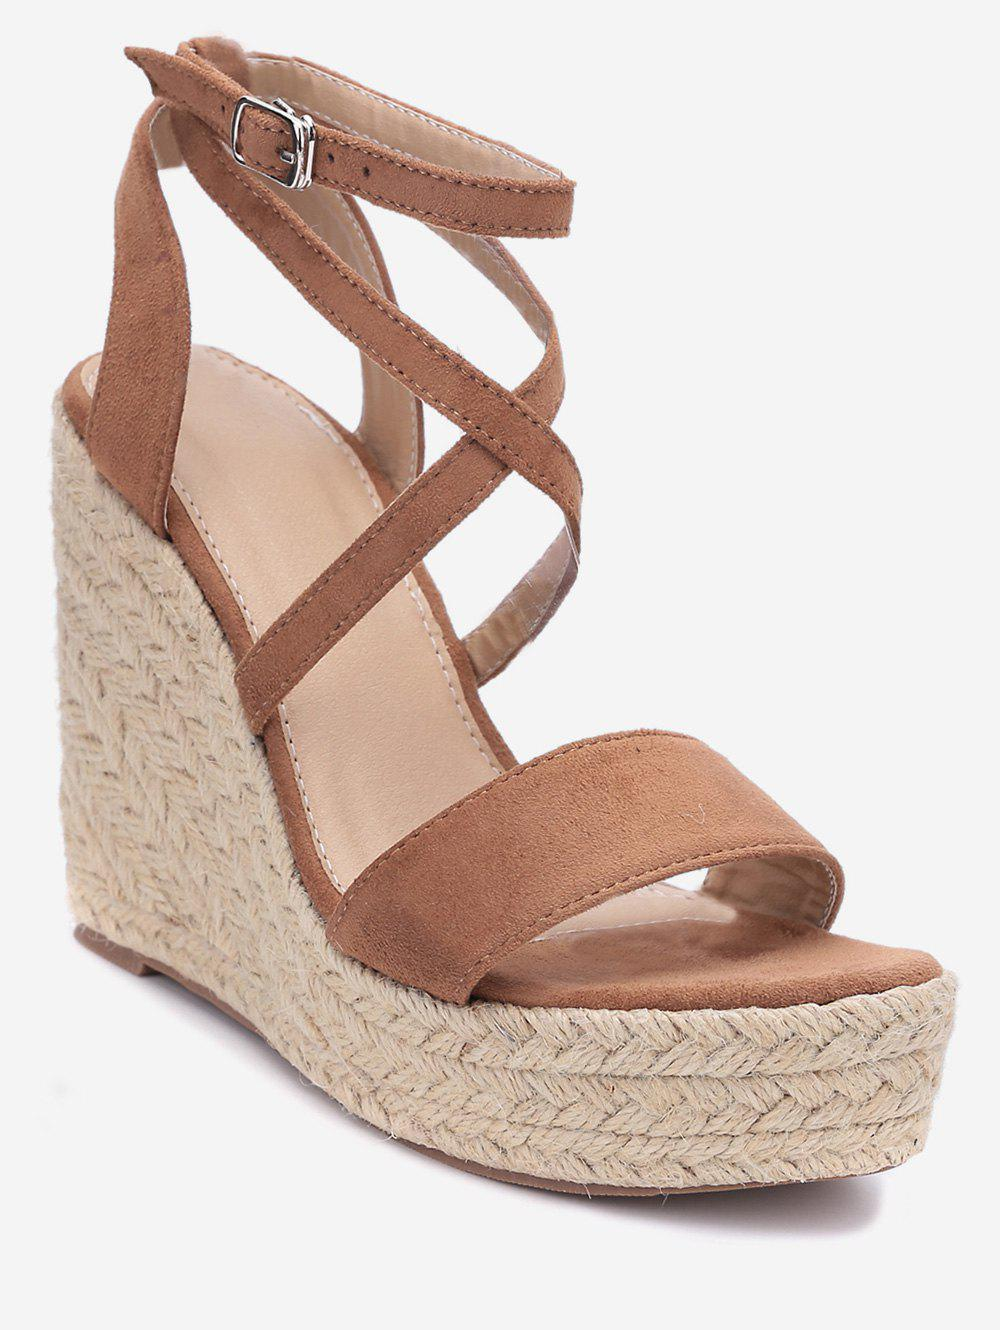 Affordable Cross Wedge High Heel Gladiator Sandals